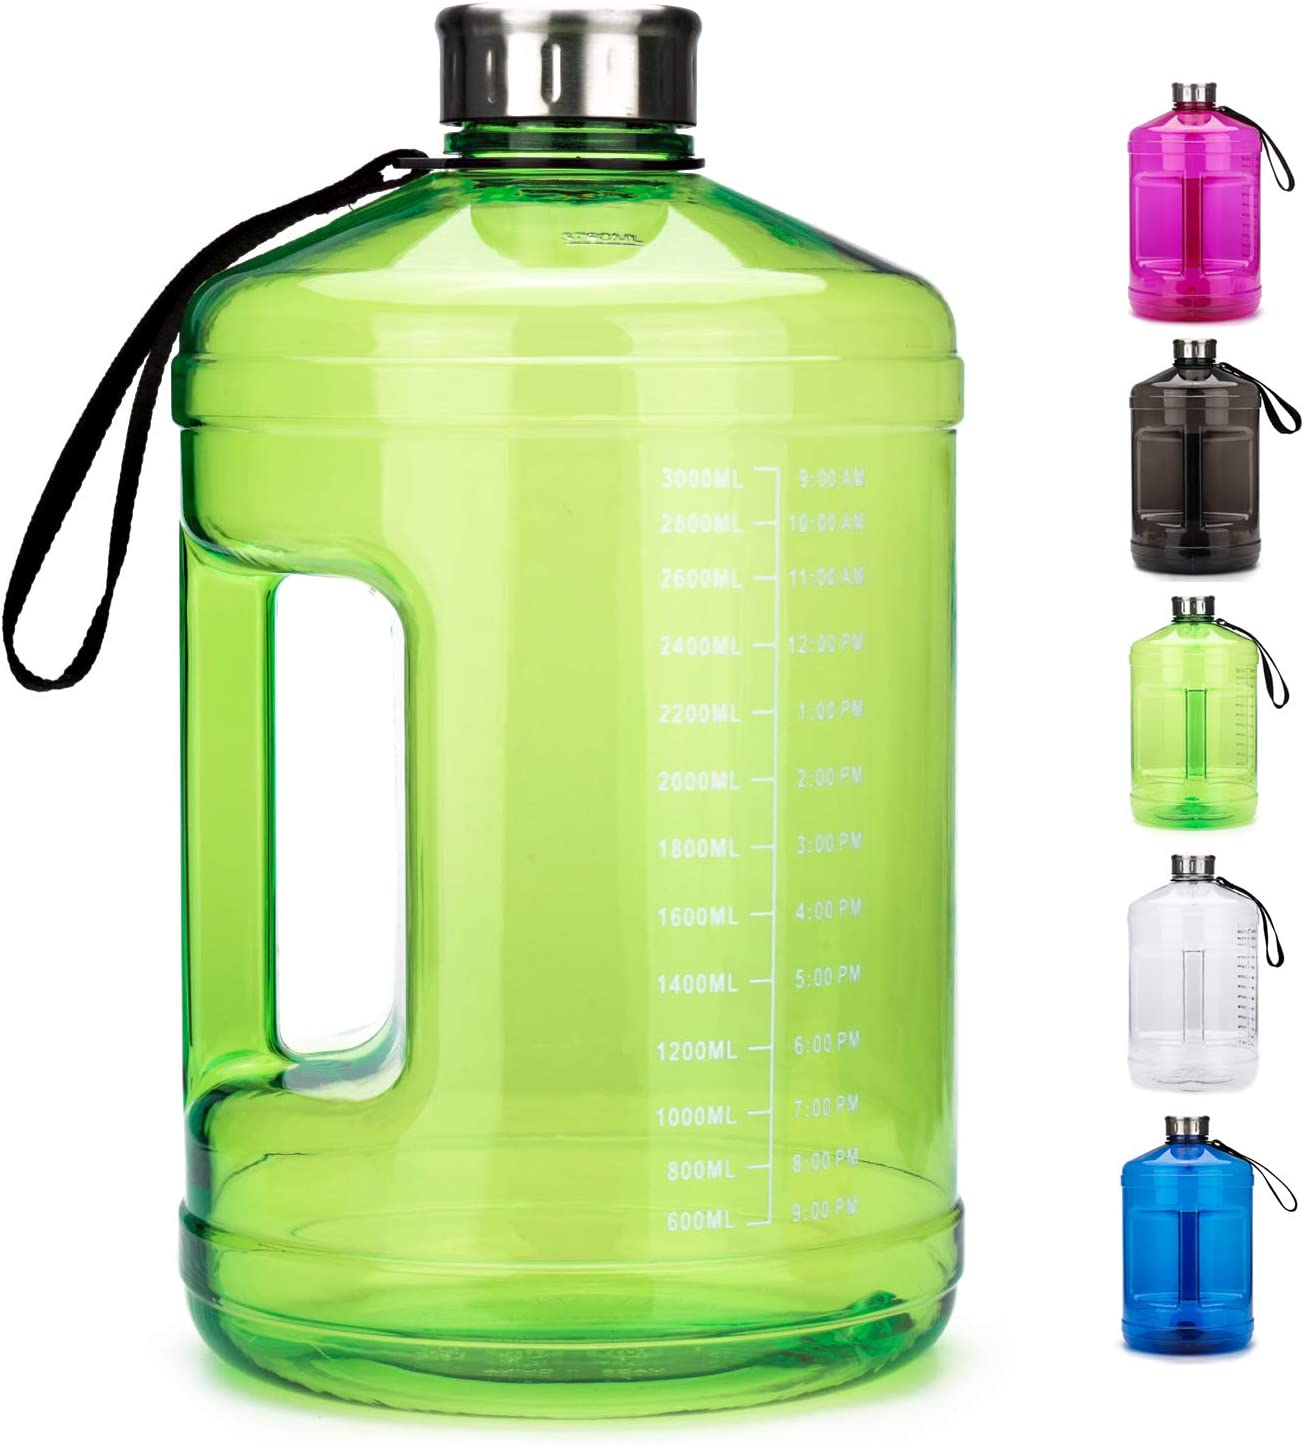 OSVAW Motivational 1 Gallon Water Bottle, BPA-Free, Leak-proof,Large Capacity Water Jug with Time Marker Reminder Hydration